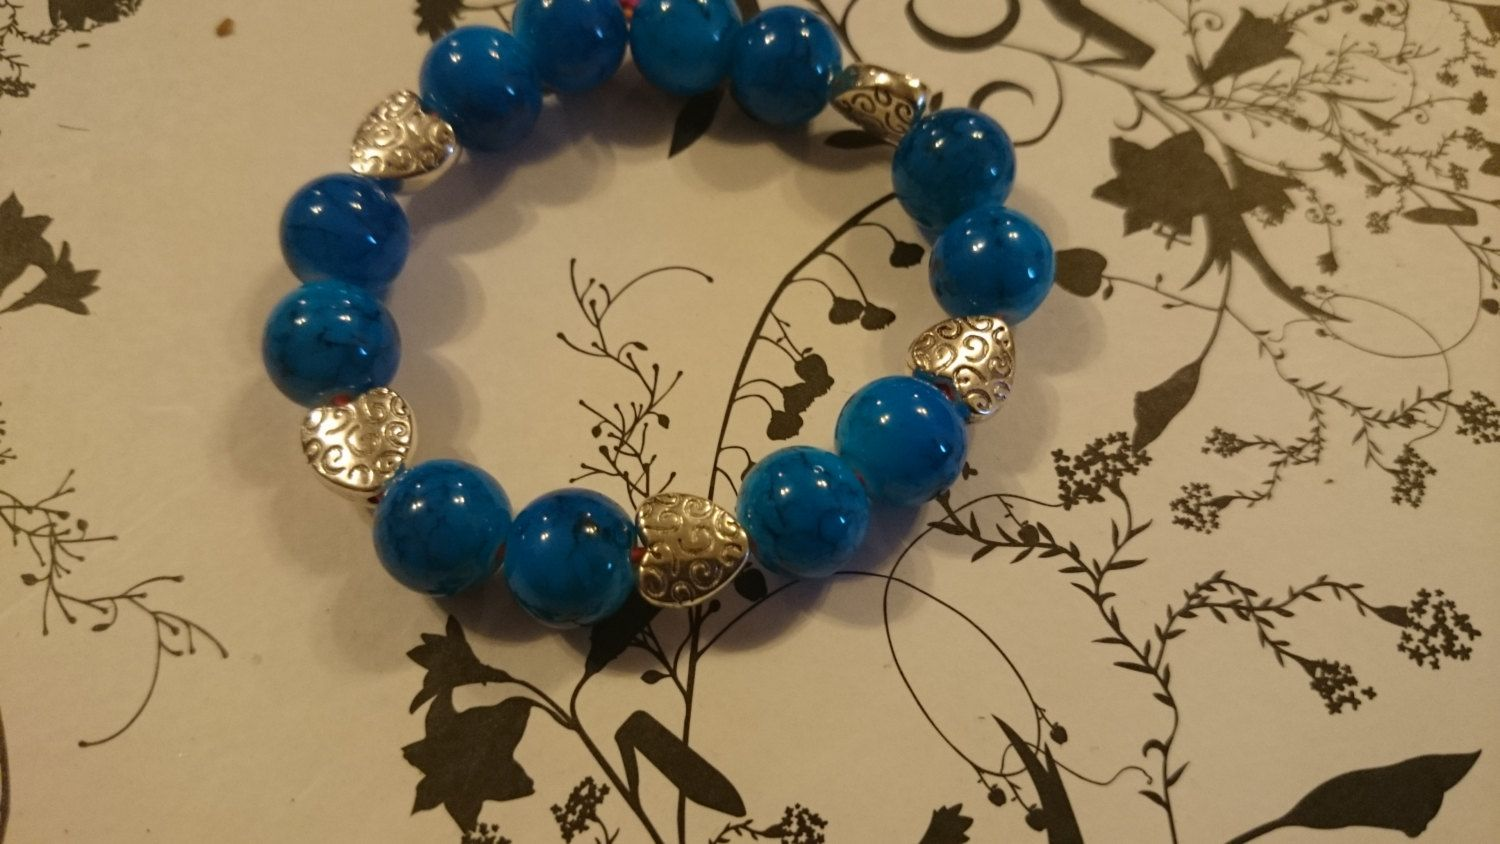 Beautiful Blue Beaded Bracelet with Patterned Heart Detailing by ShyamaBeautii on Etsy